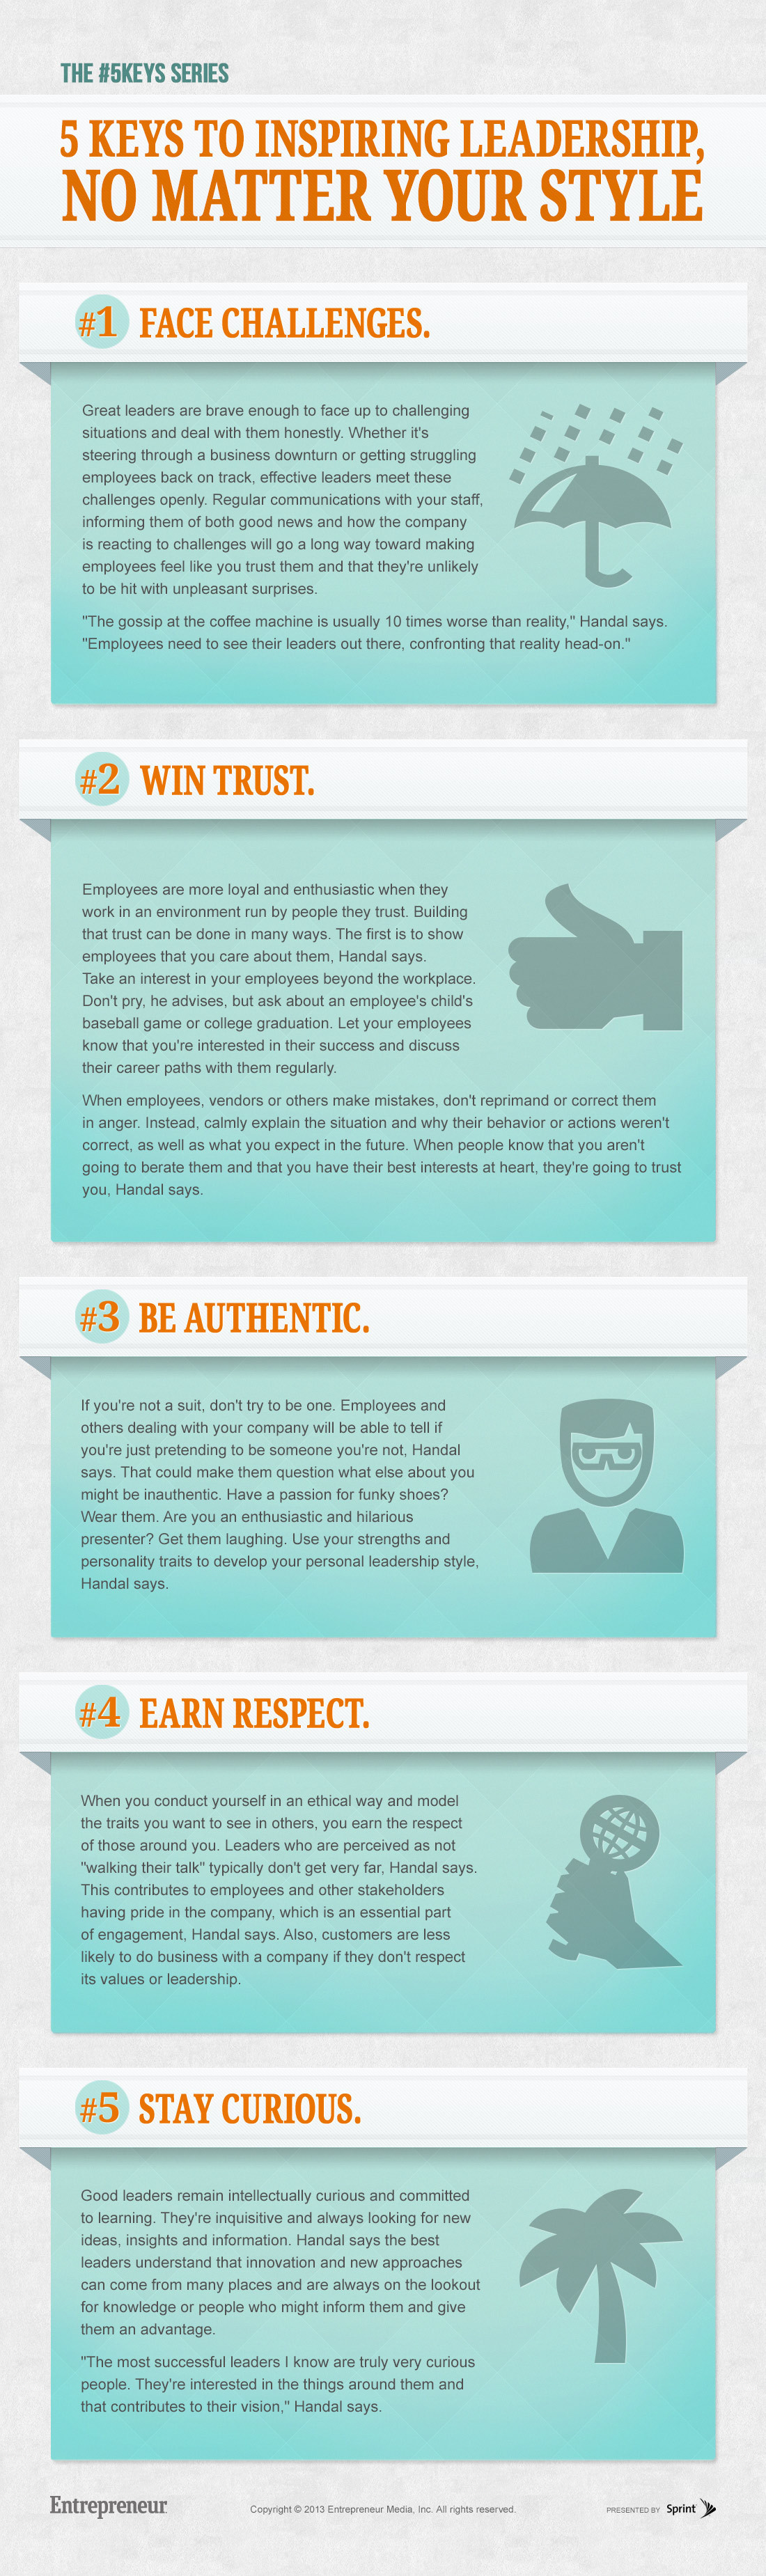 5 Keys to Inspiring Leadership, No Matter Your Style [Infographic]